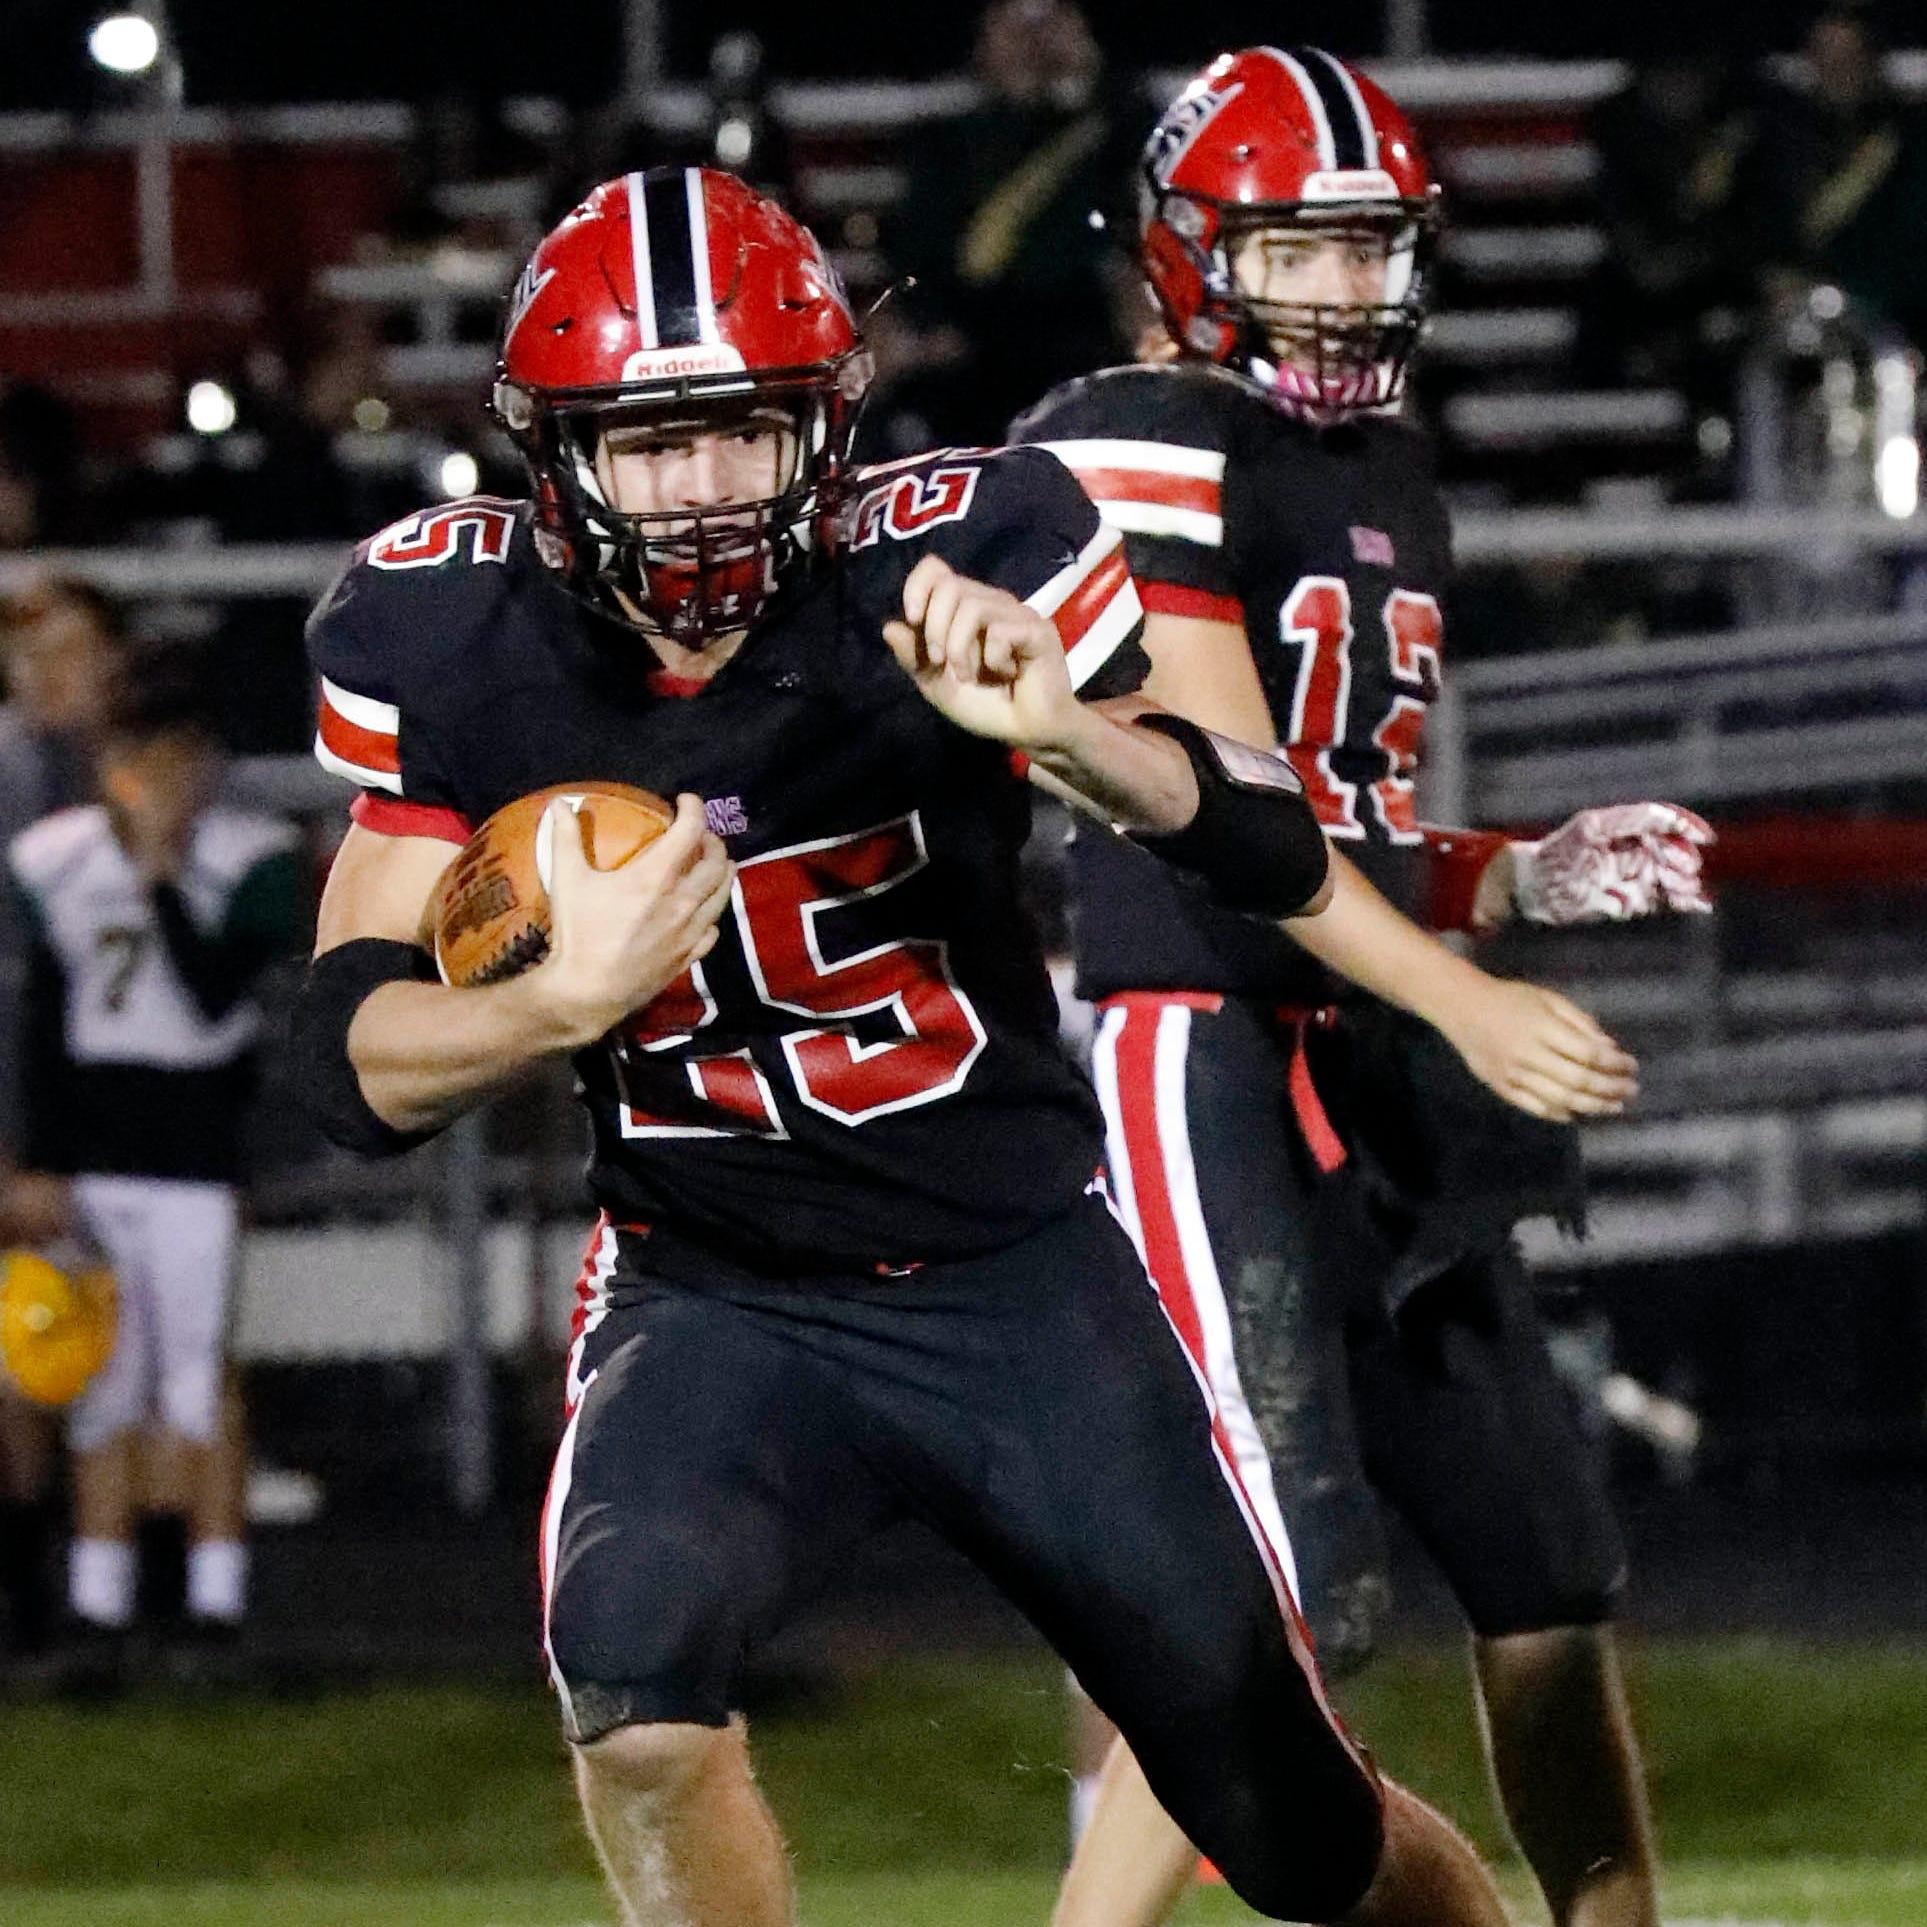 HS Football Roundup: Falcons' Wolfe runs wild, rushing for 355 yards, five TDs